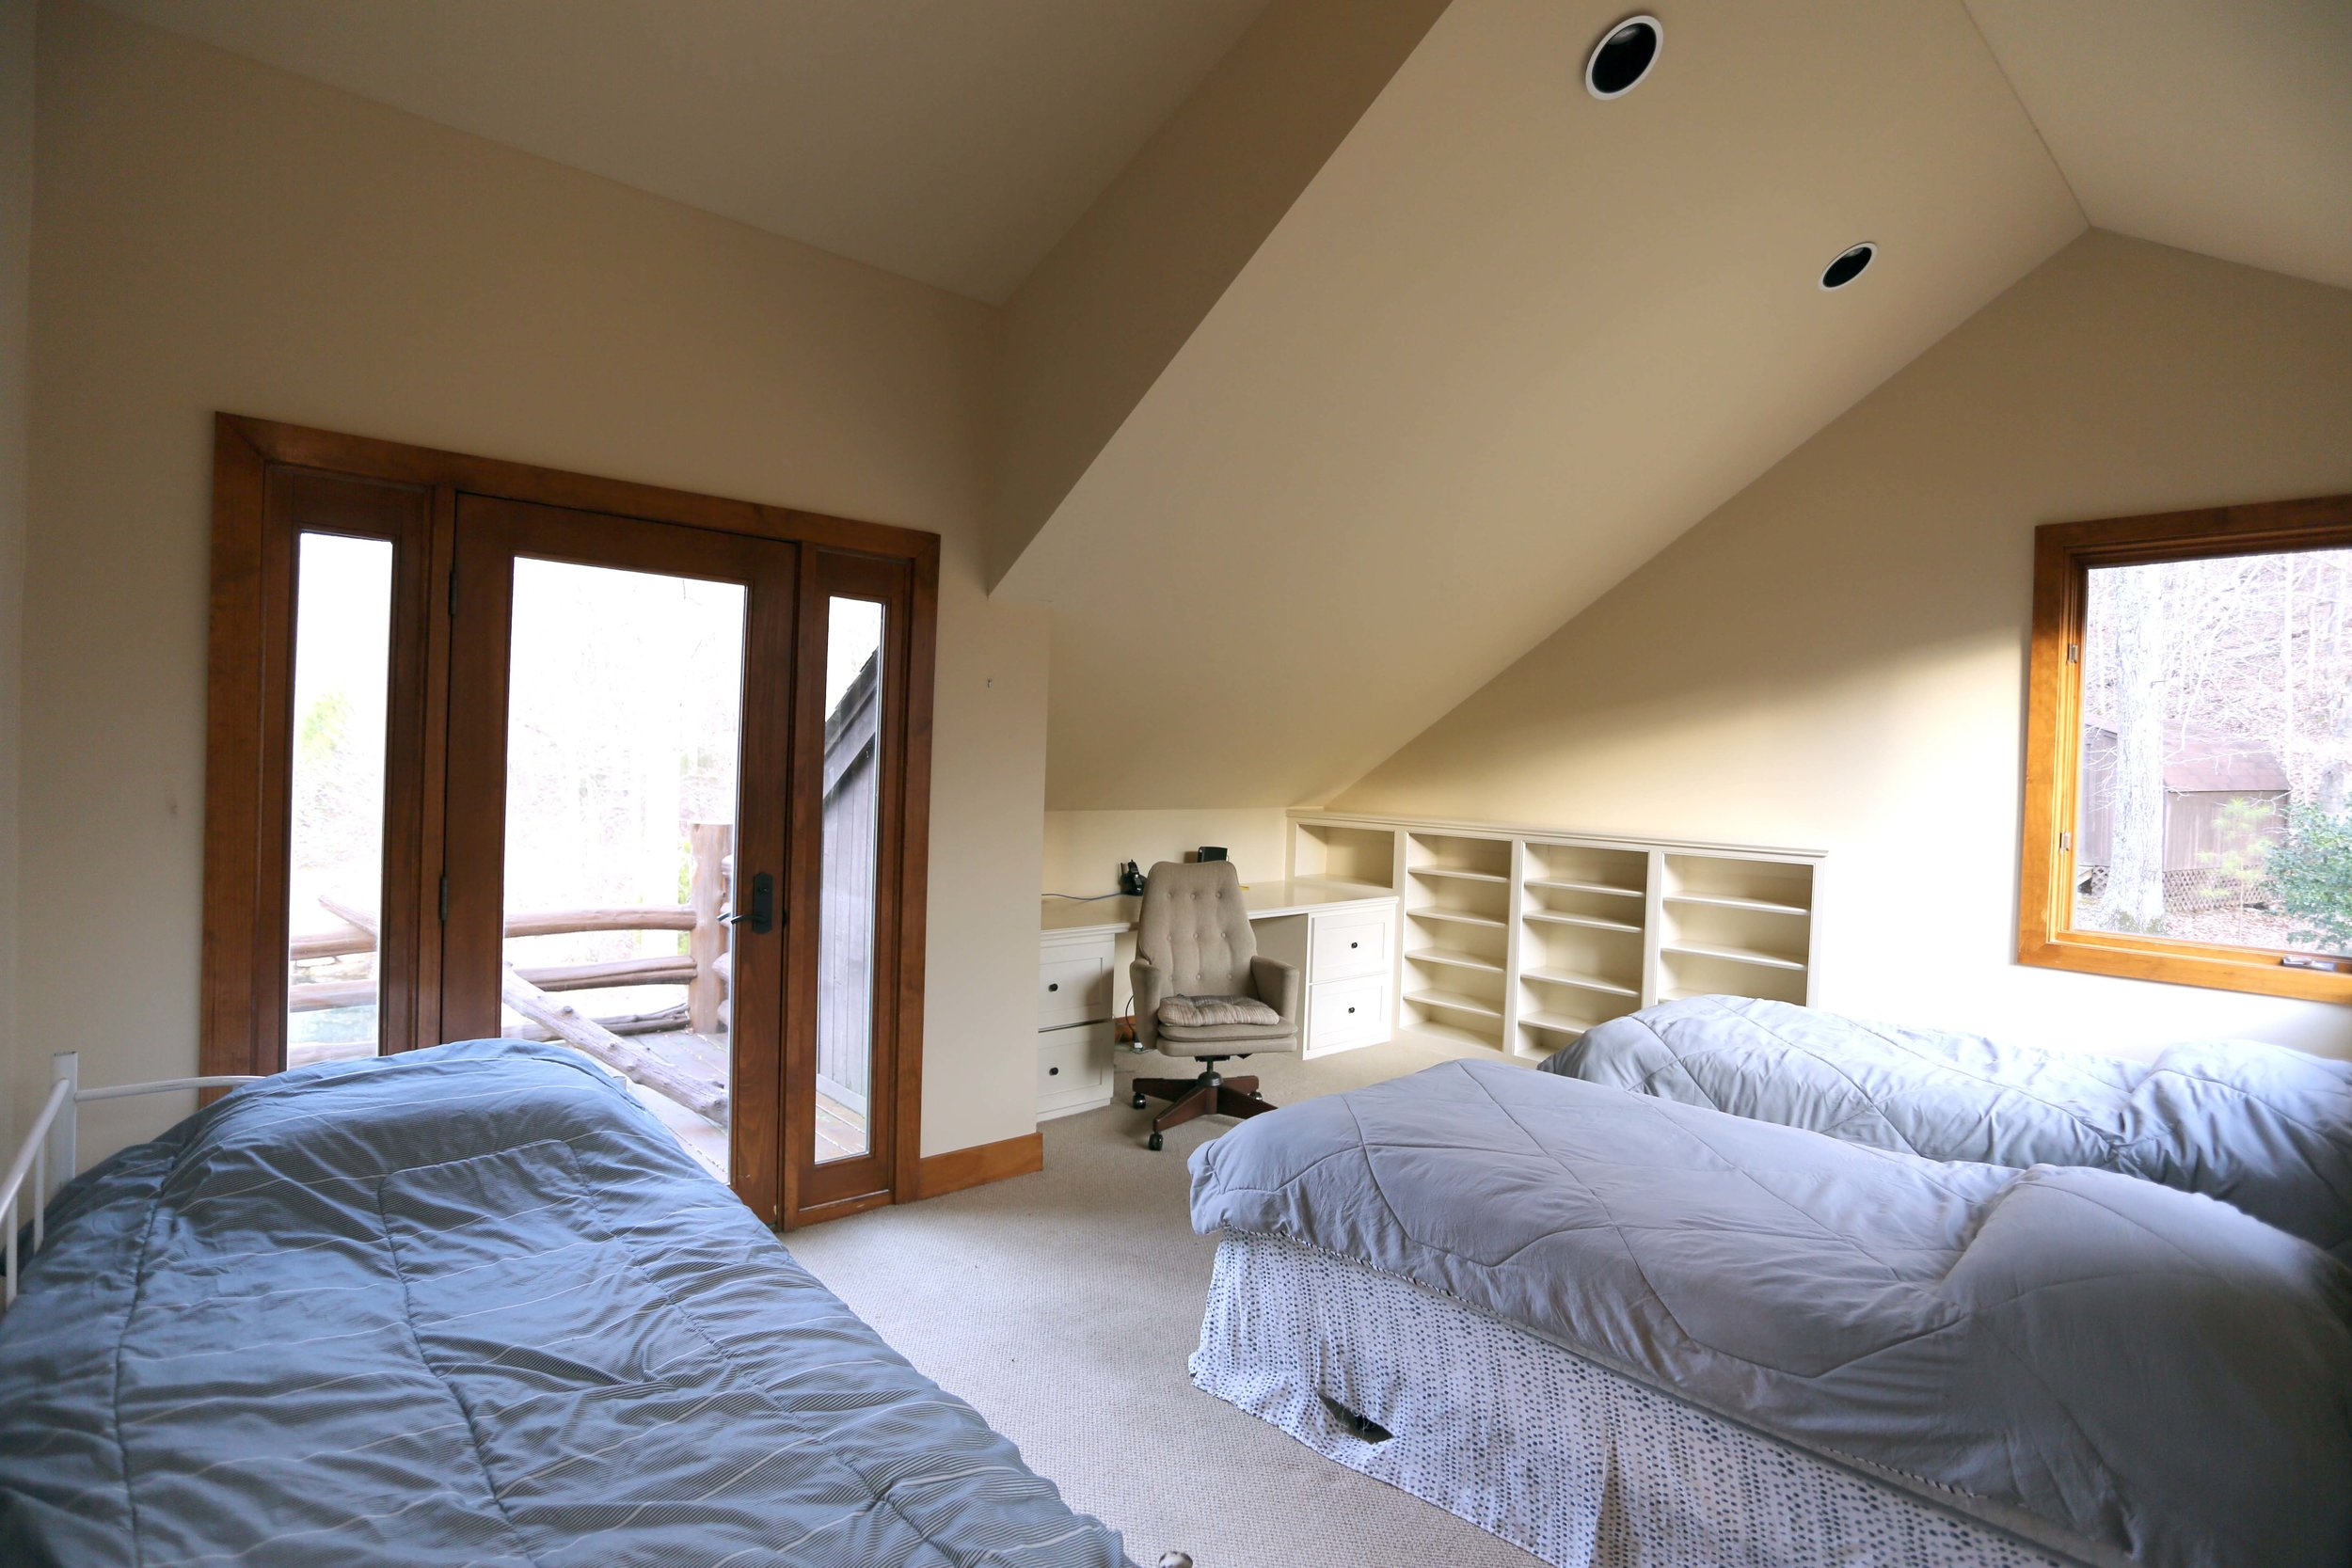 The Circle Lodge Spiral Loft has three singles. Shared full bathroom downstairs Horseshoes, bocci, shuffleboard, fishing pond on site. Organic produces straight from farm steps away.